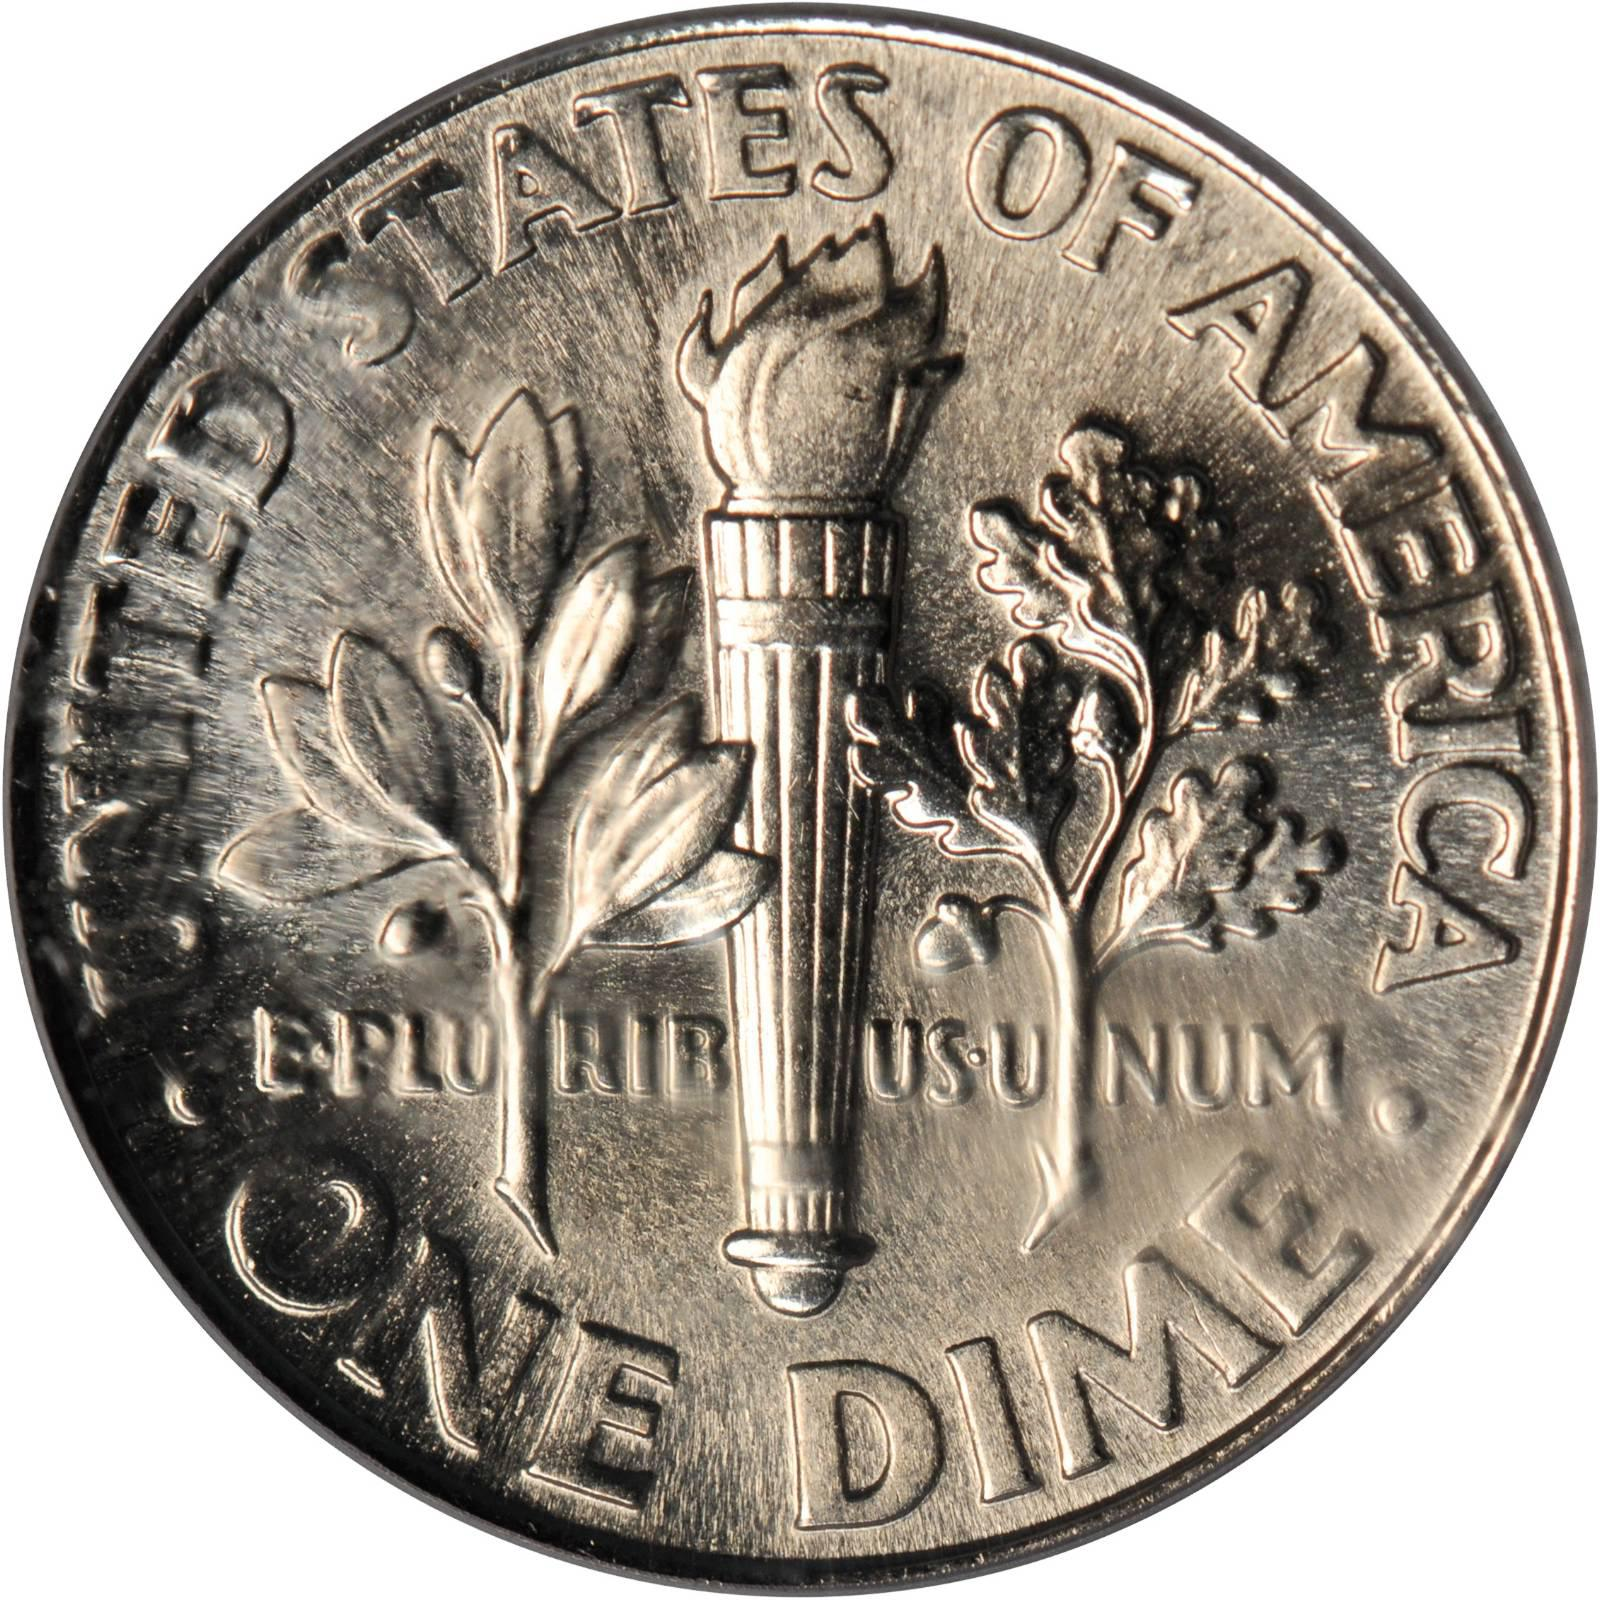 who is on the dime coin